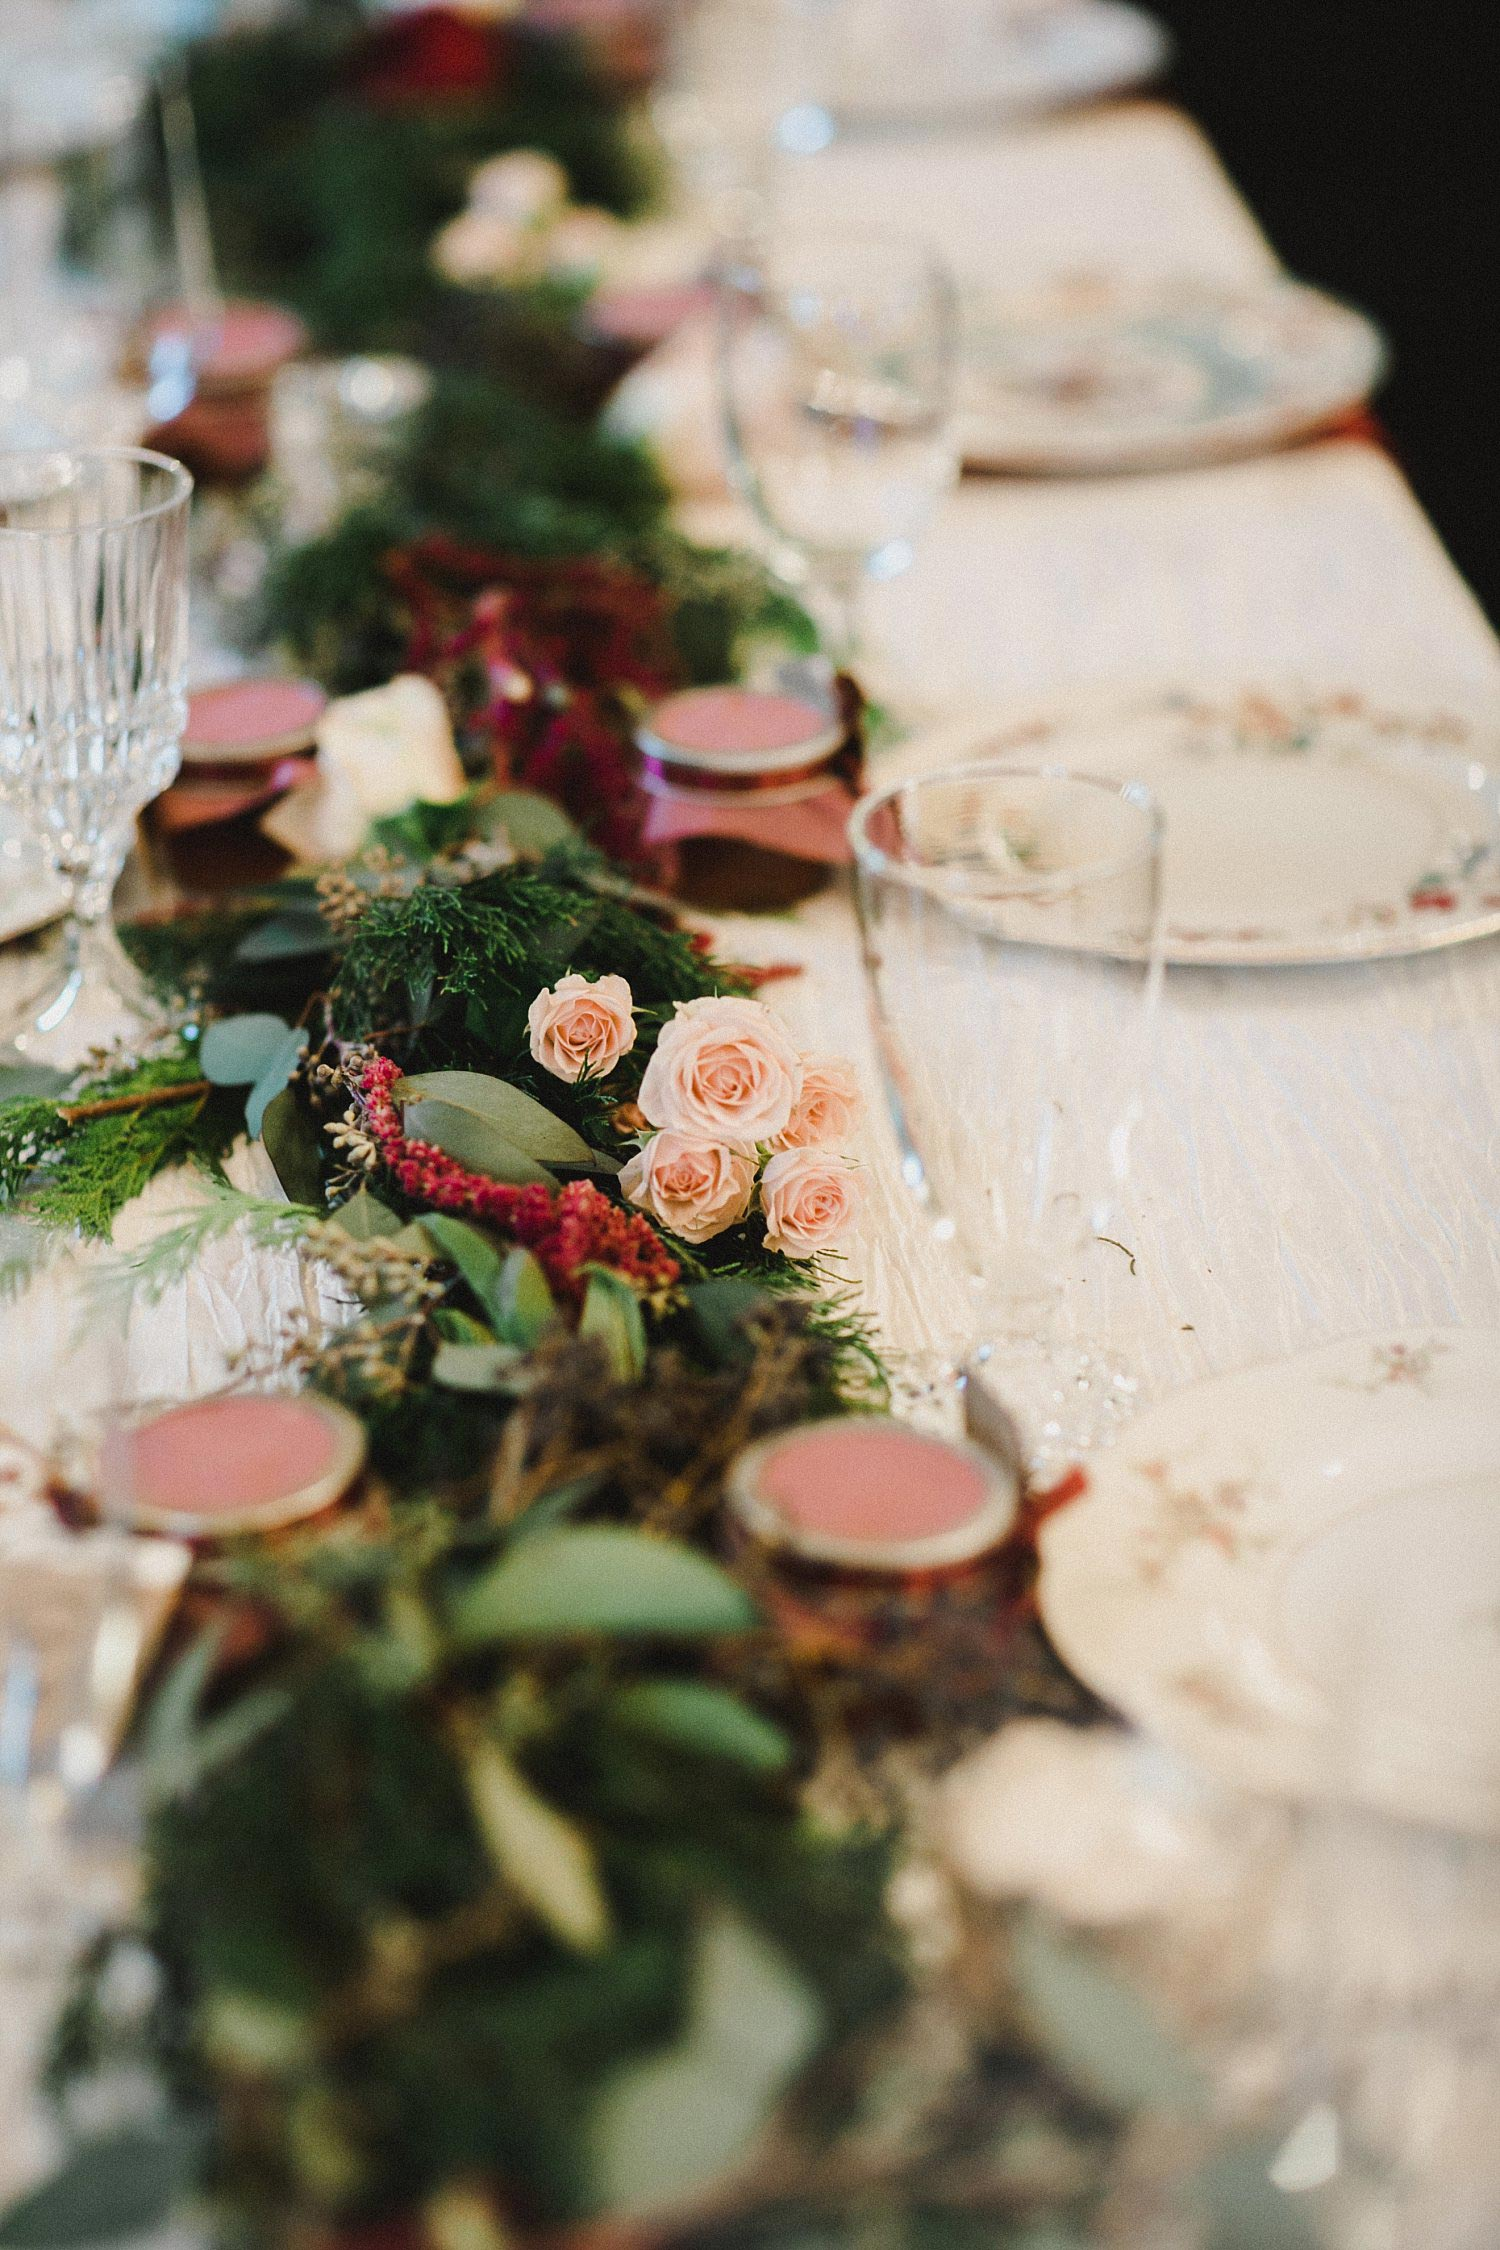 Hollow Hill Farm Event Center Wedding table garland with evergreen greenery and blush and cream rose